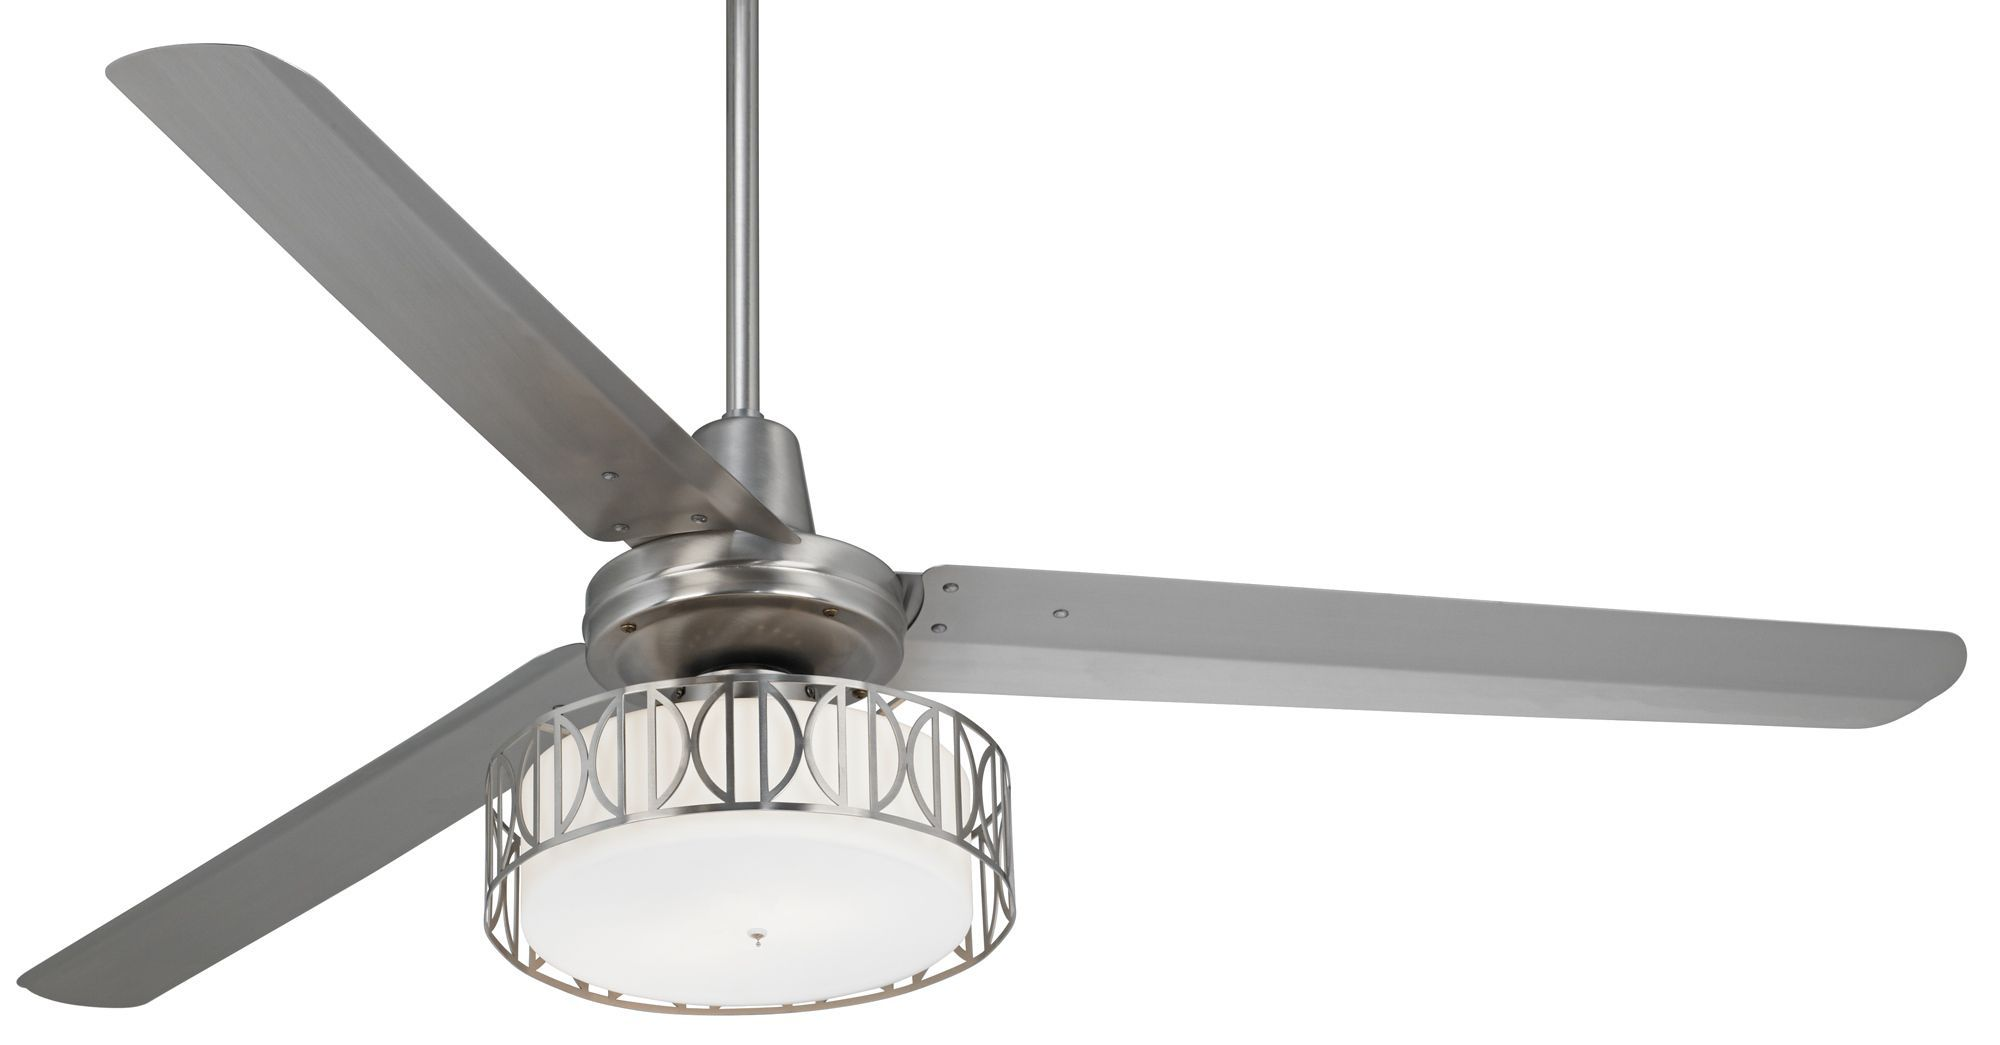 Nursery Ceiling Fans 60 Quot Casa Vieja Turbina Art Deco Brushed Steel Ceiling Fan